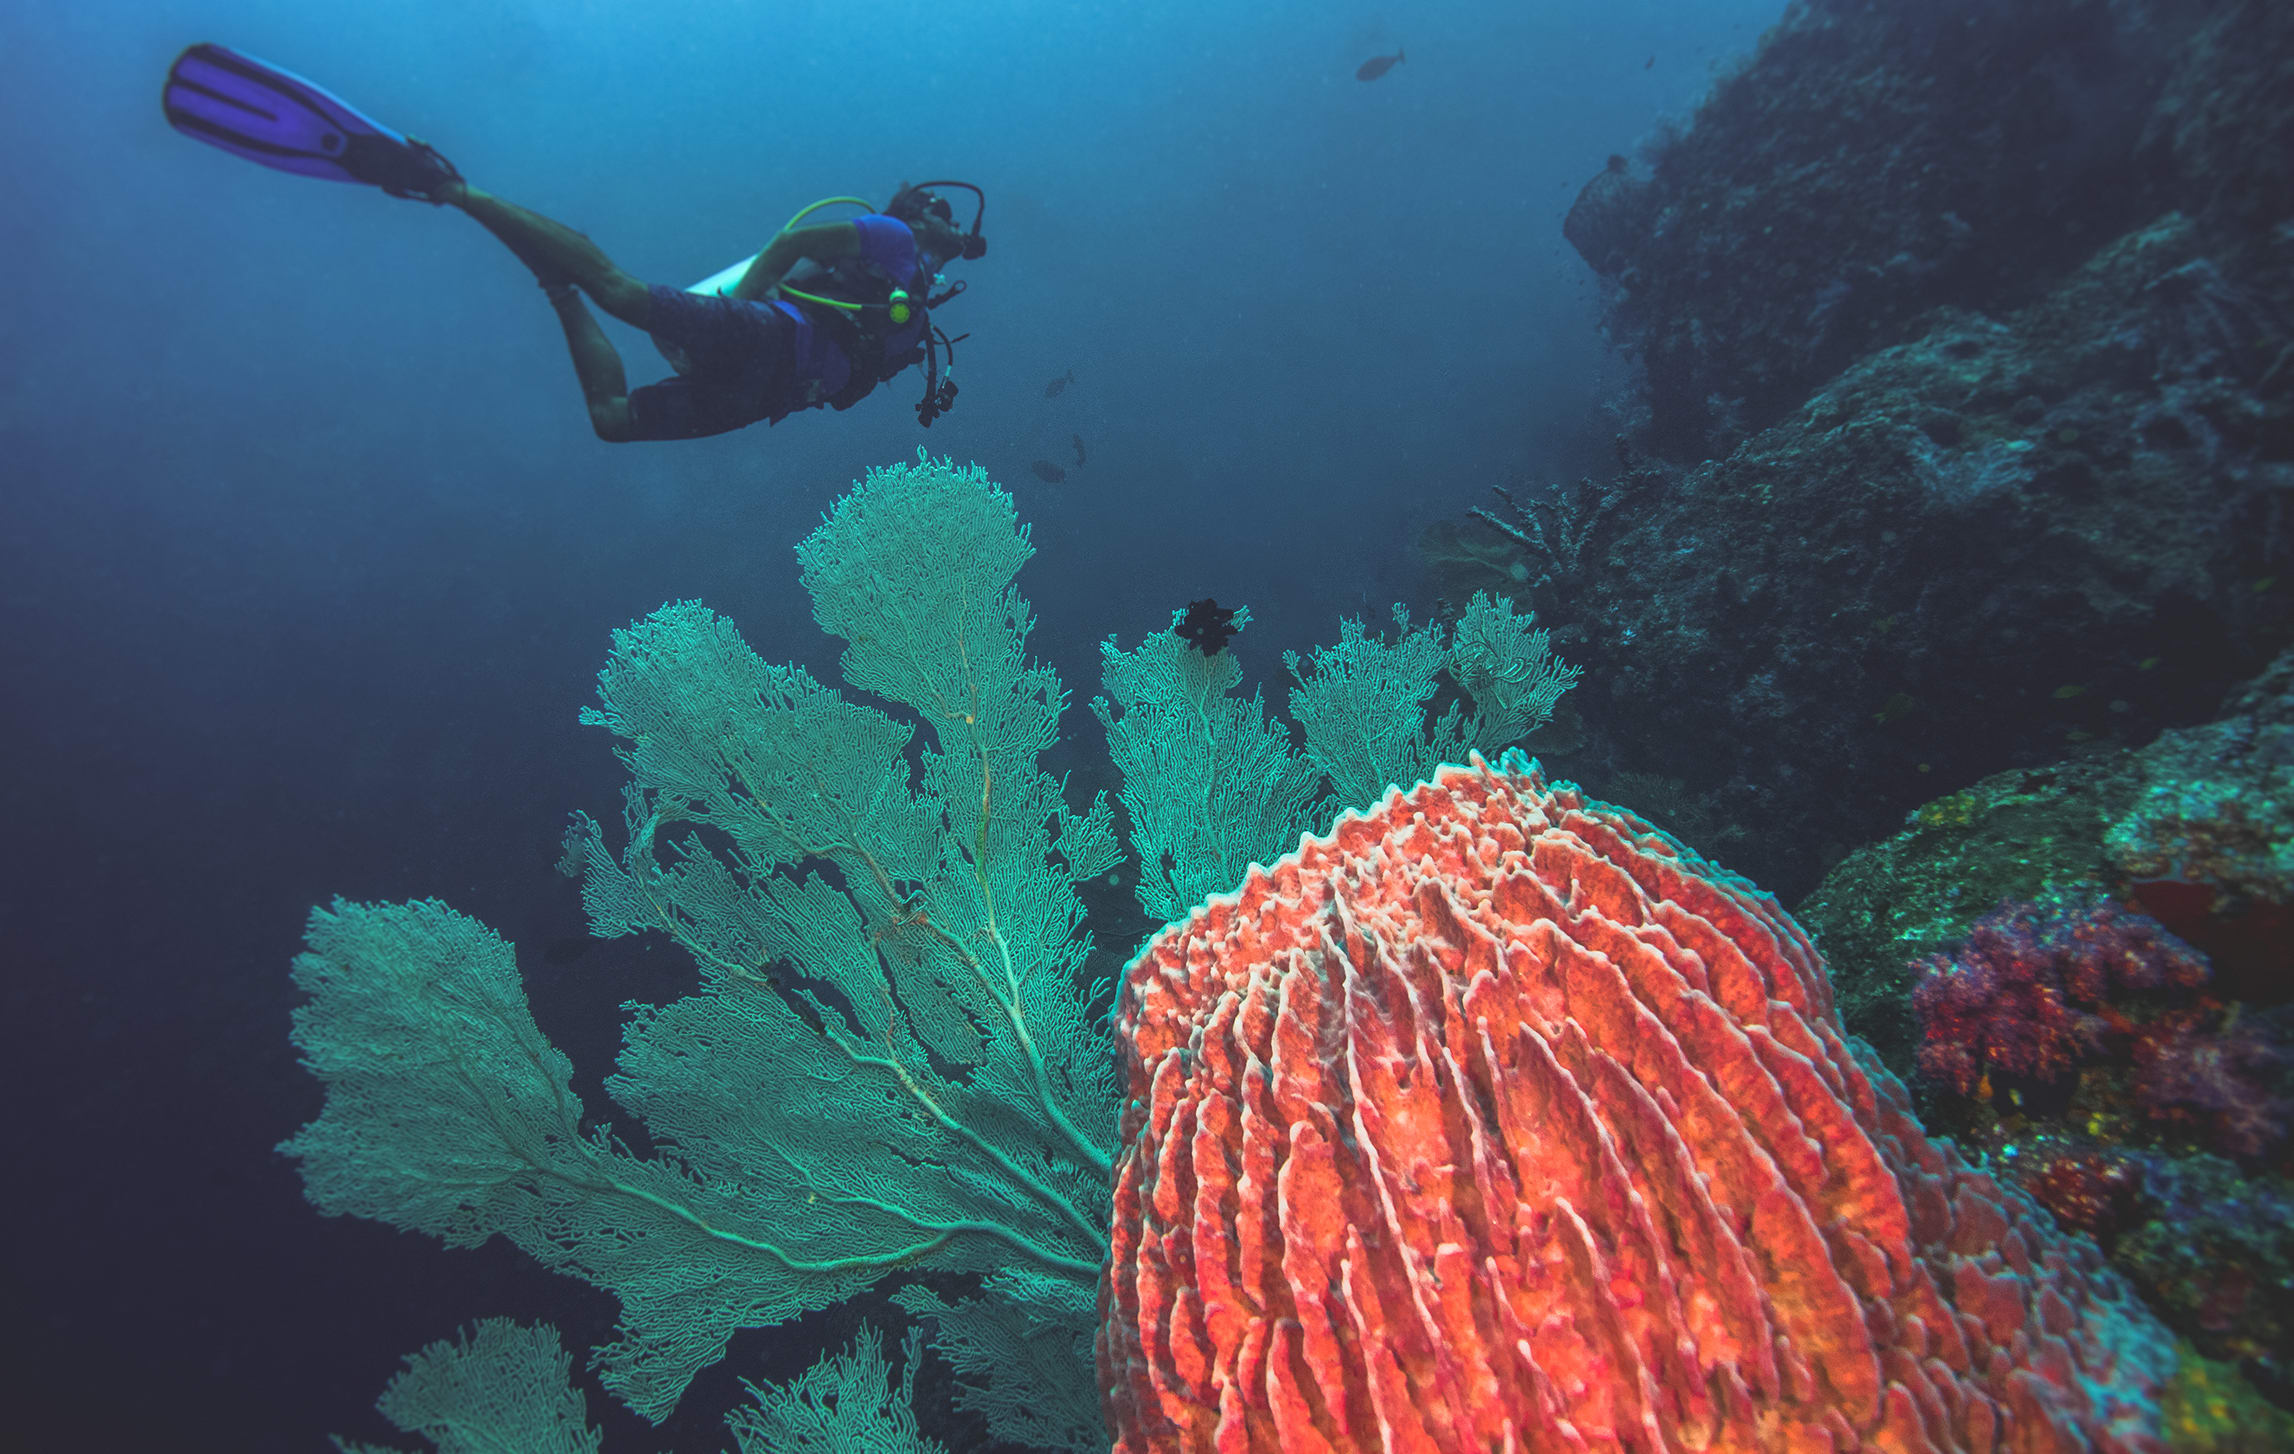 A range of different coral, like this green sea-fan coral and orange barrel sponge, live side by side on a reef. Barrel sponges, which come in a range of colours, tend to live for thousands of years. They are the reef's primary recycling units and are also responsible for providing nutrition to many of the organisms that live there.